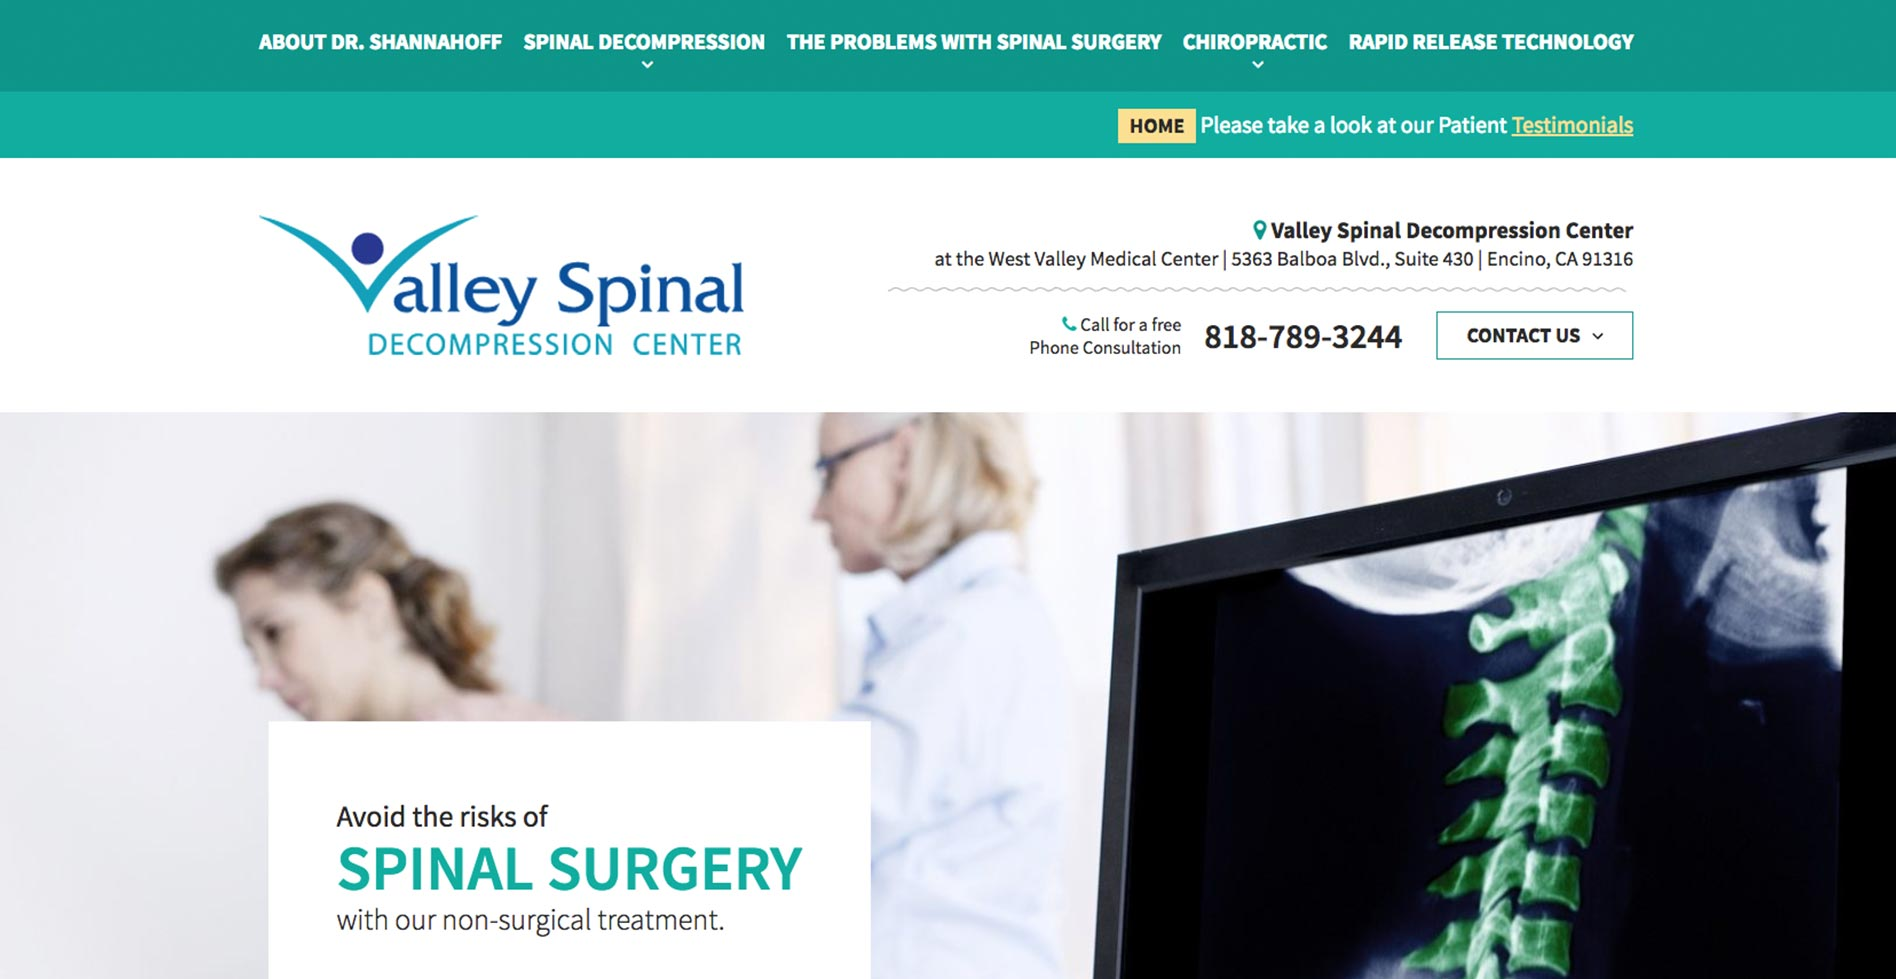 Valley Spinal Decompression Center